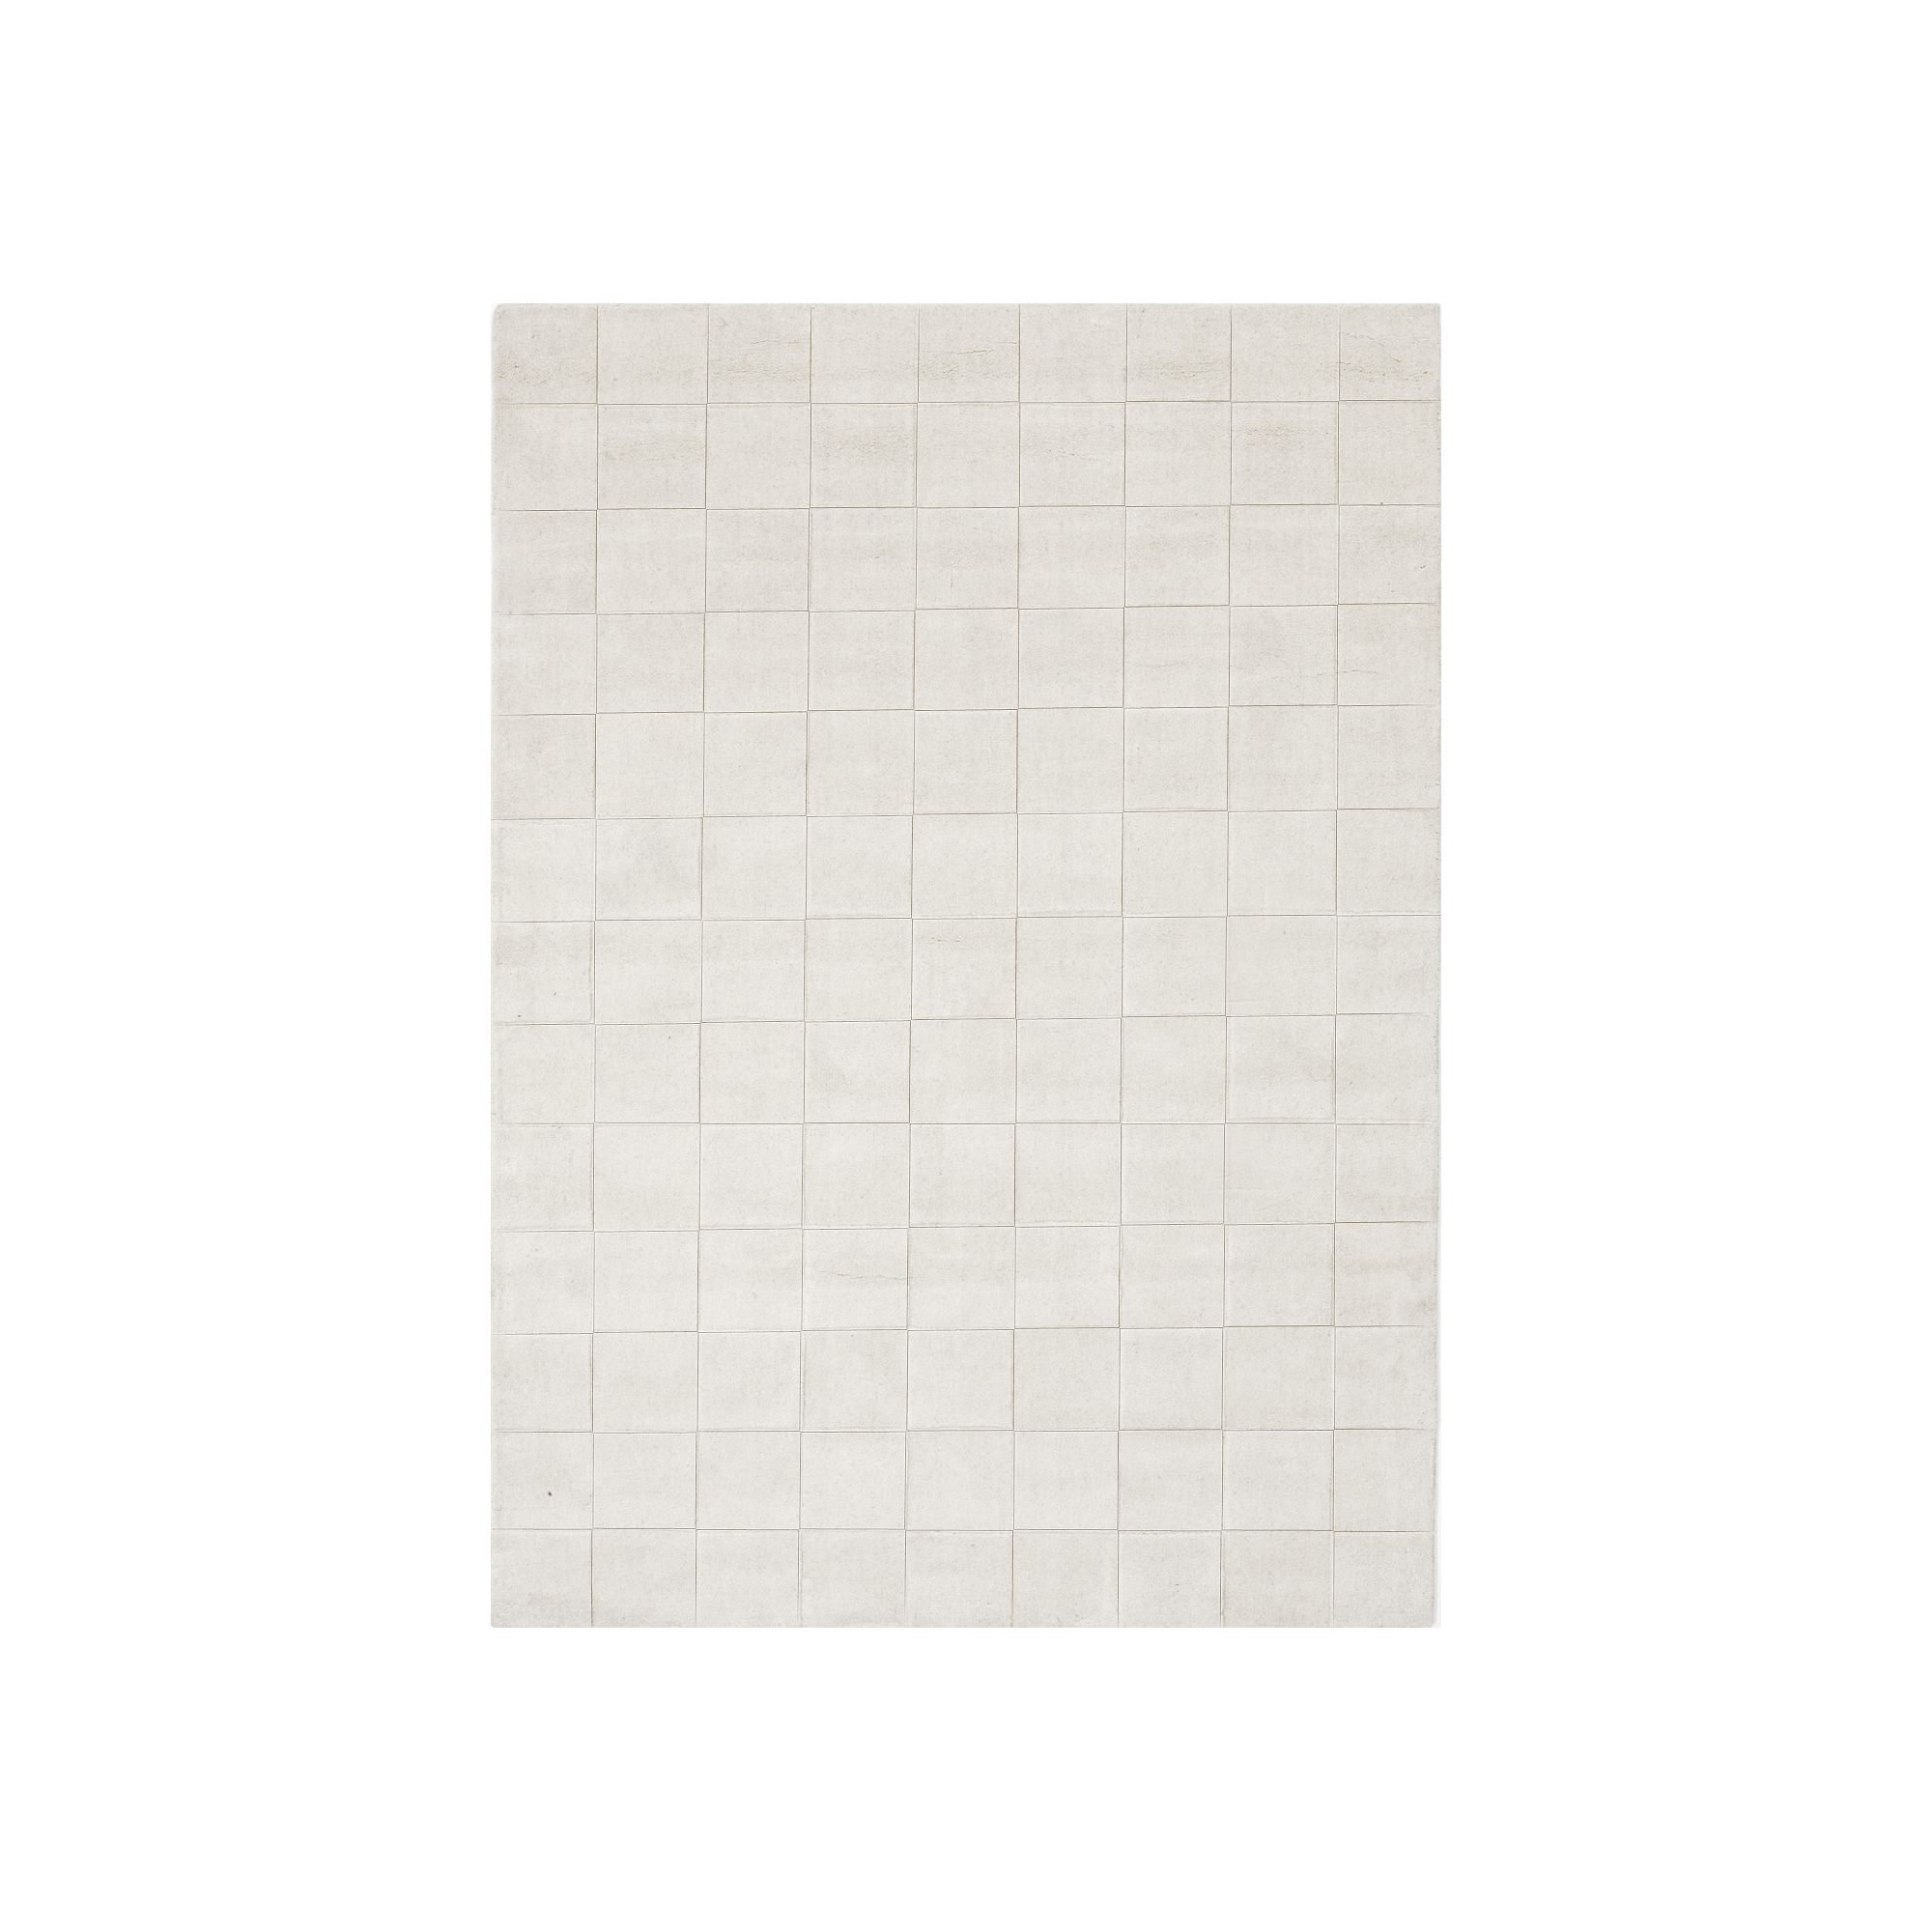 Linie Design Luzern White Rug - 300cm x 200cm at Tesco Direct